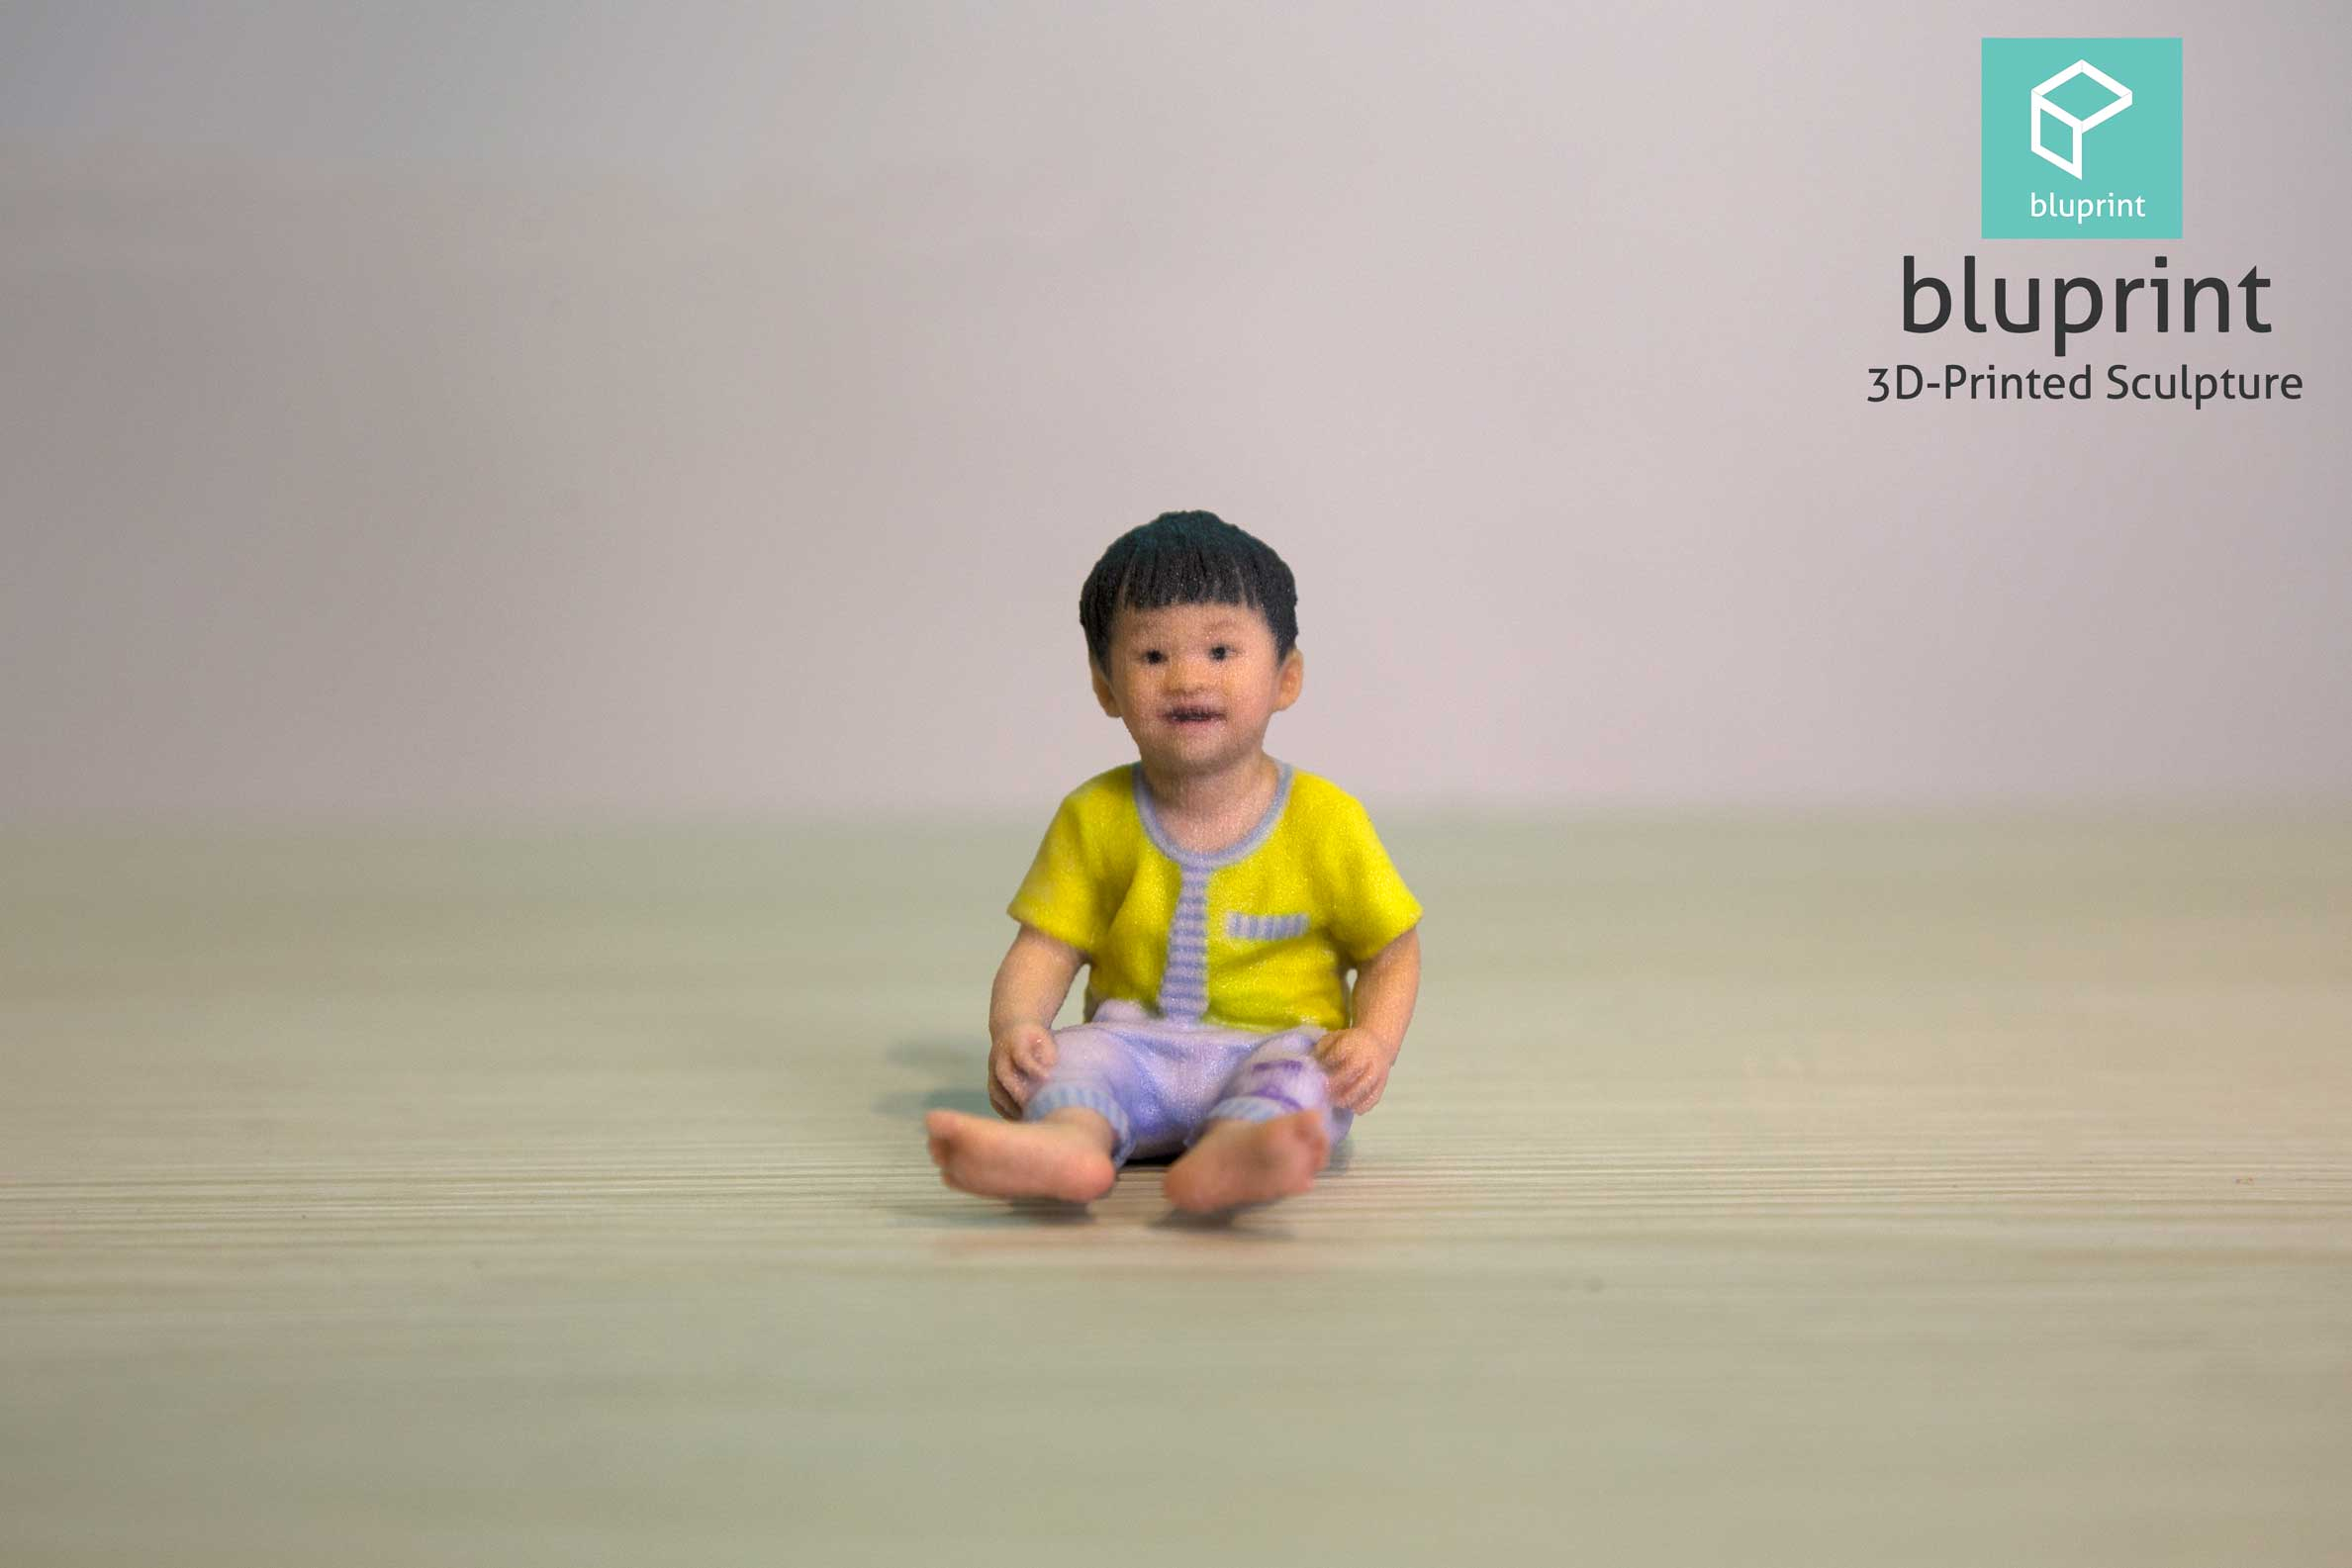 Bluprint-3D-Figure-Sculpture-Hong-Kong-Kid-Boy-Sit